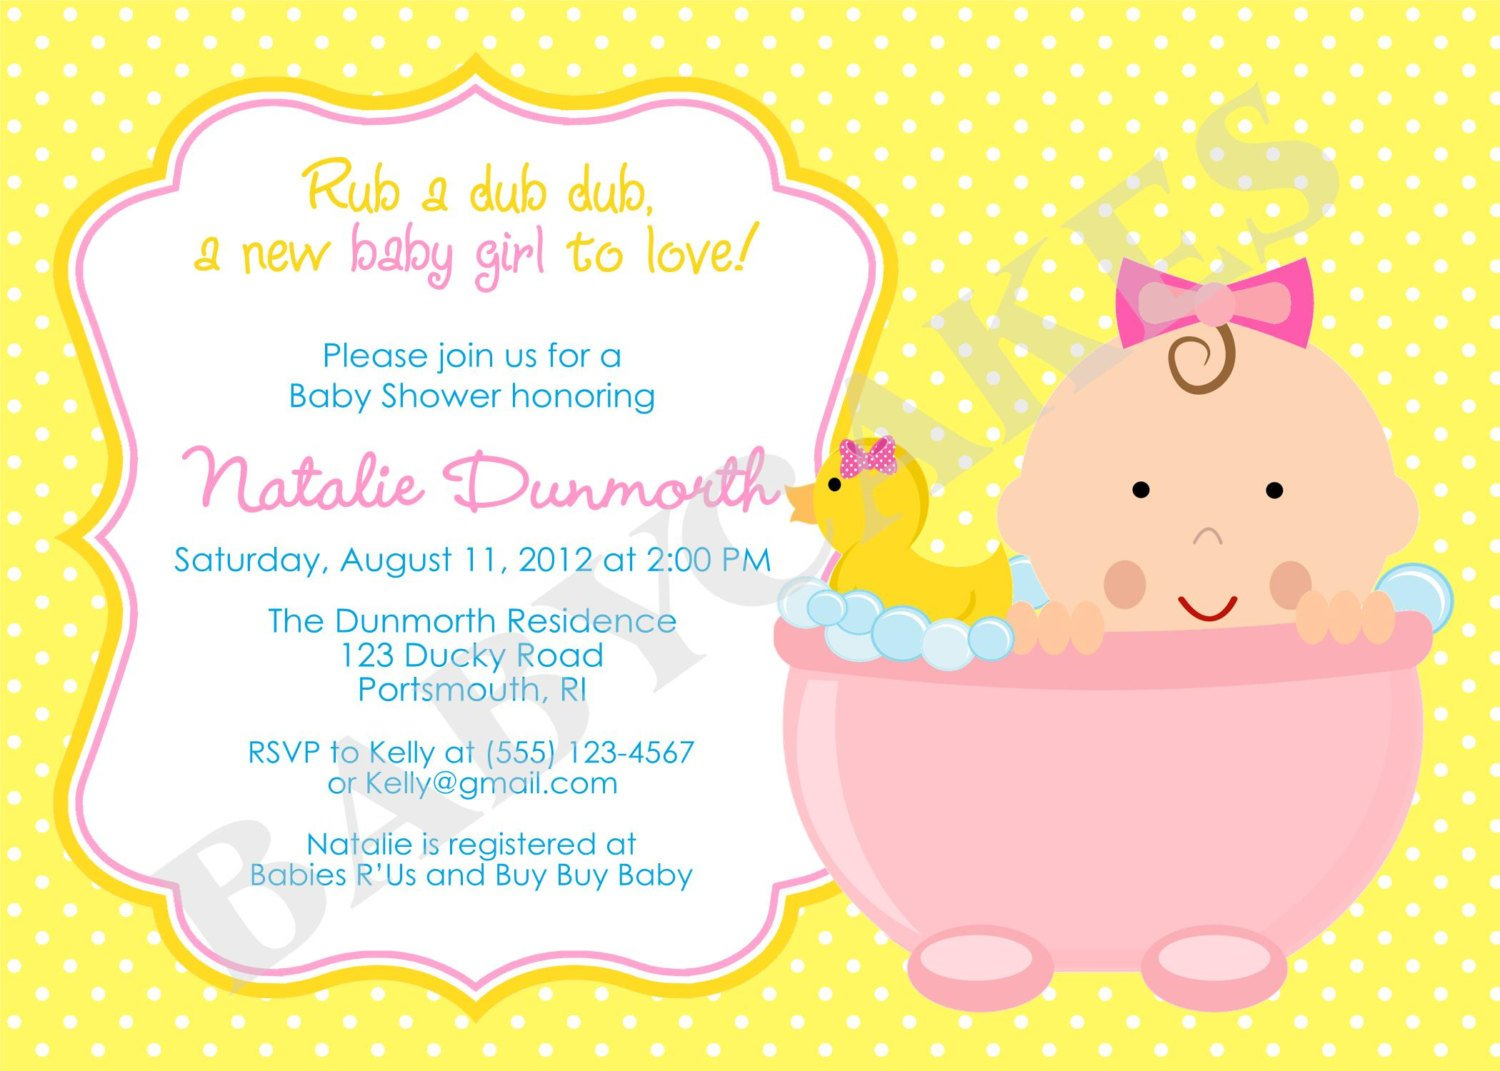 Free Rubber Ducky Baby Shower Invitation Templates